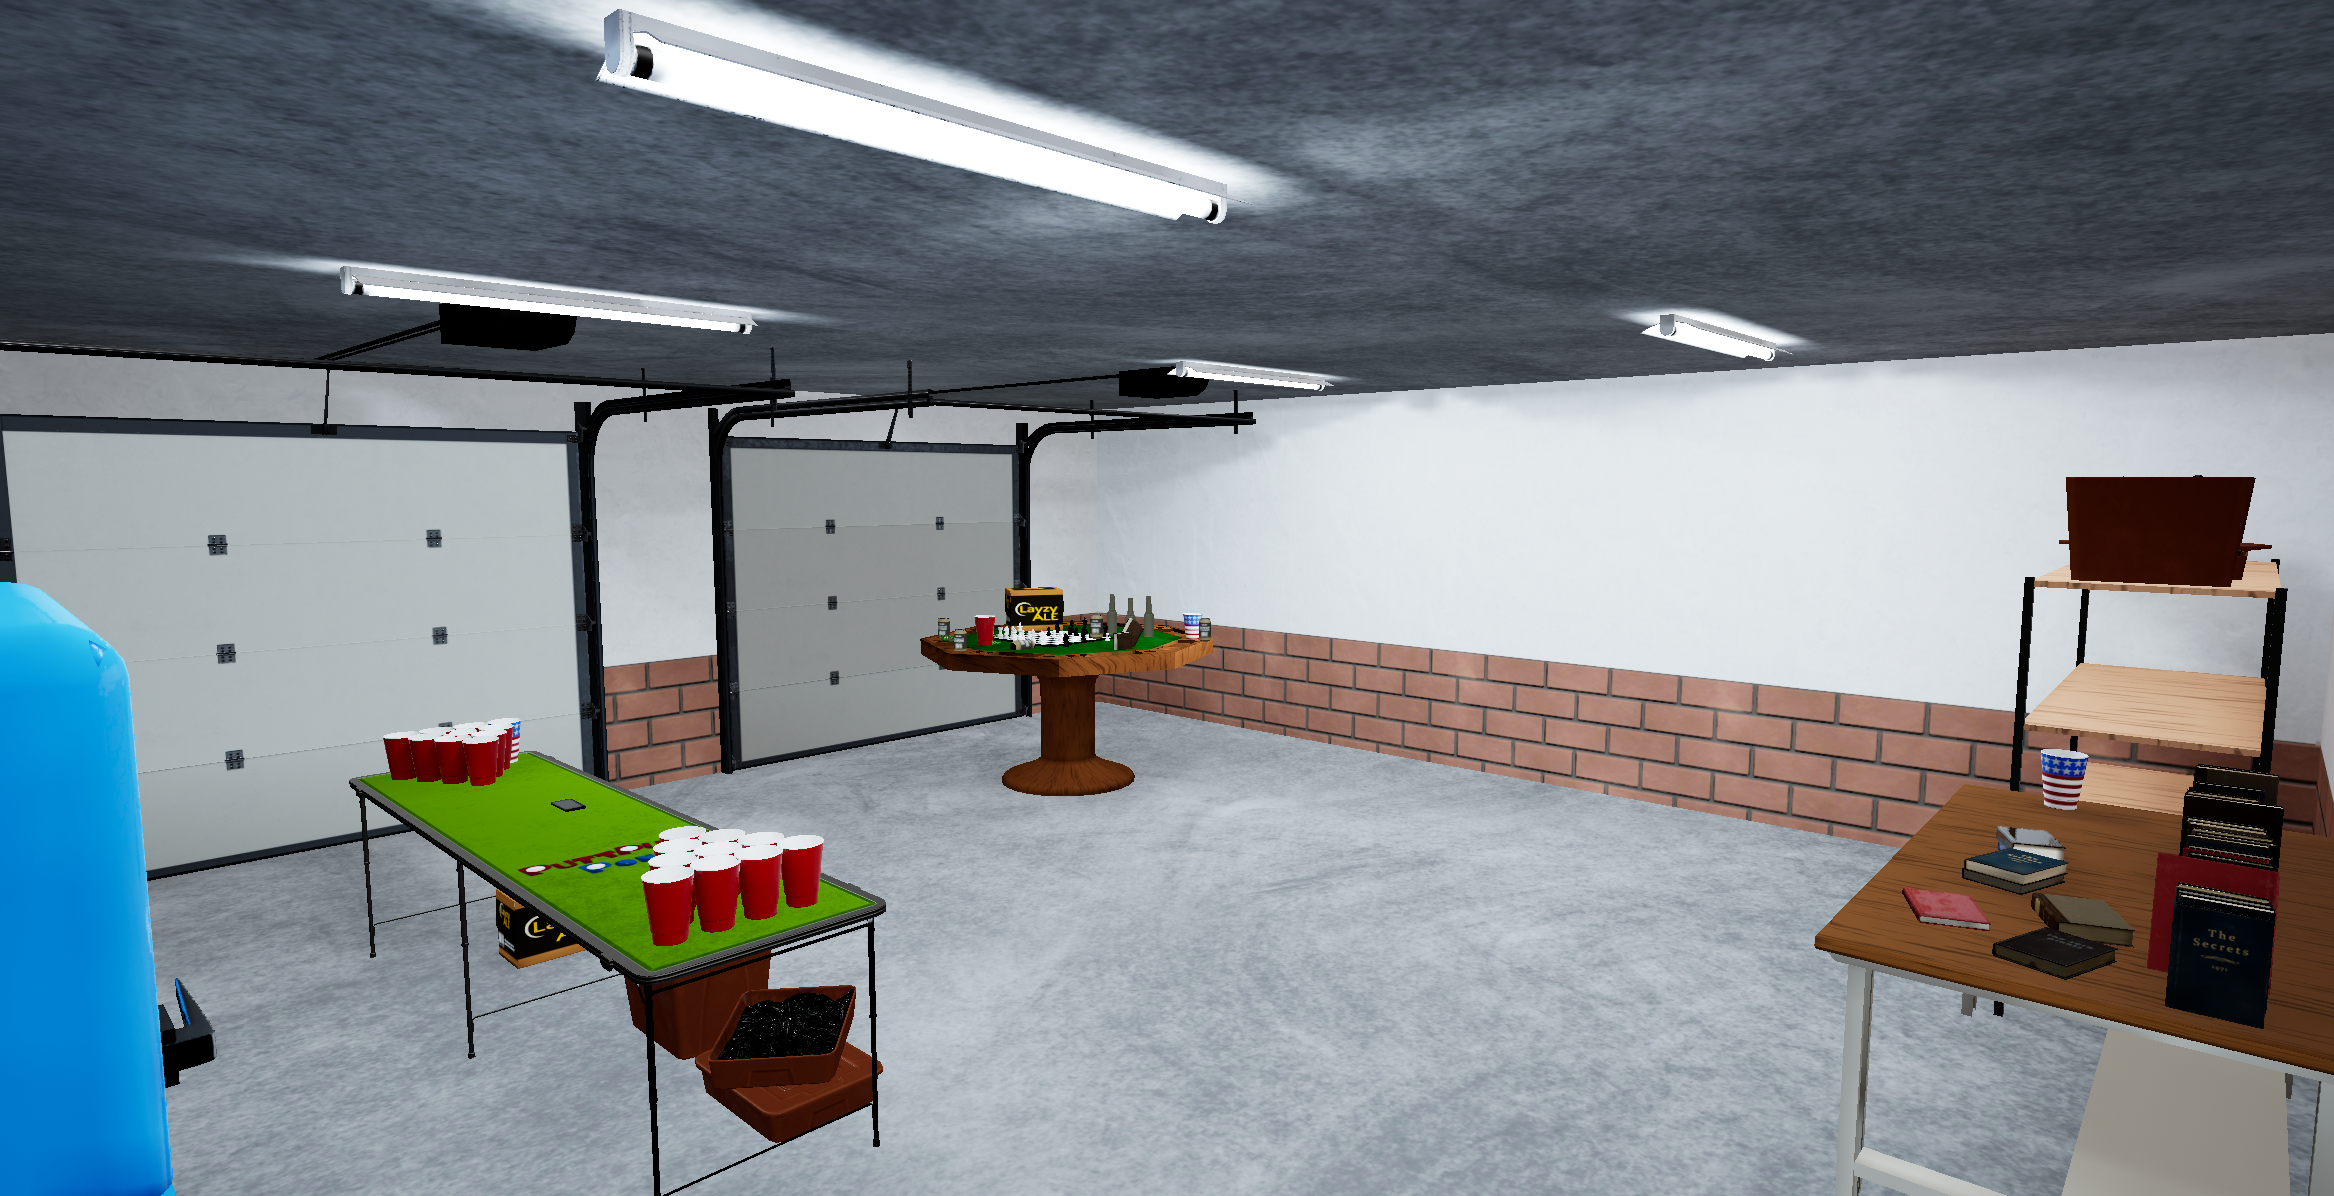 A complete overhaul of lighting and garage. Still a WIP in progress but slowly getting closer.